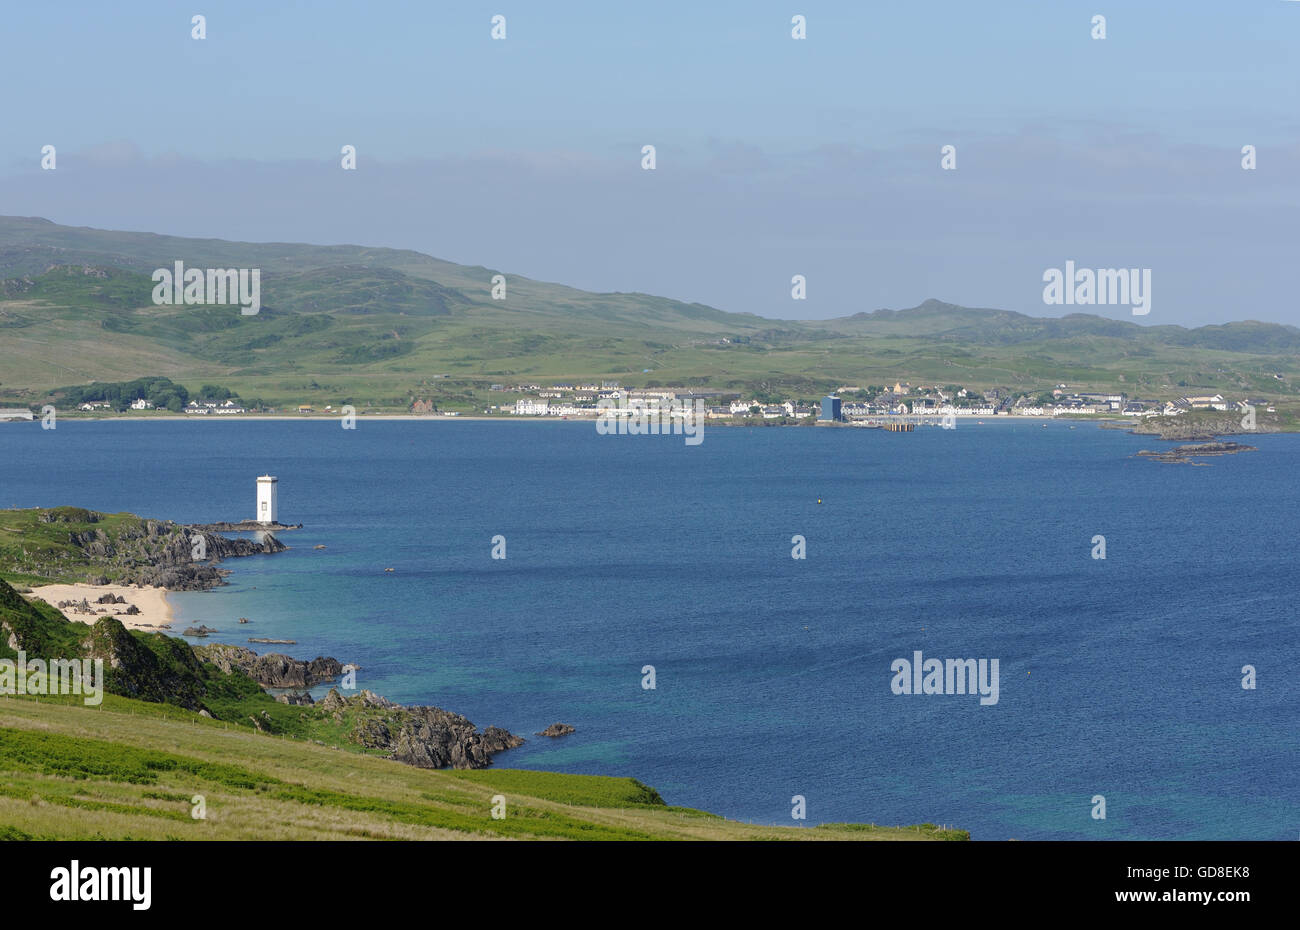 The Lighthouse at Carraig Fhada, Kilnaughton Bay and the town of Port Ellen, Port Eilein, Islay, Inner Hebrides, - Stock Image